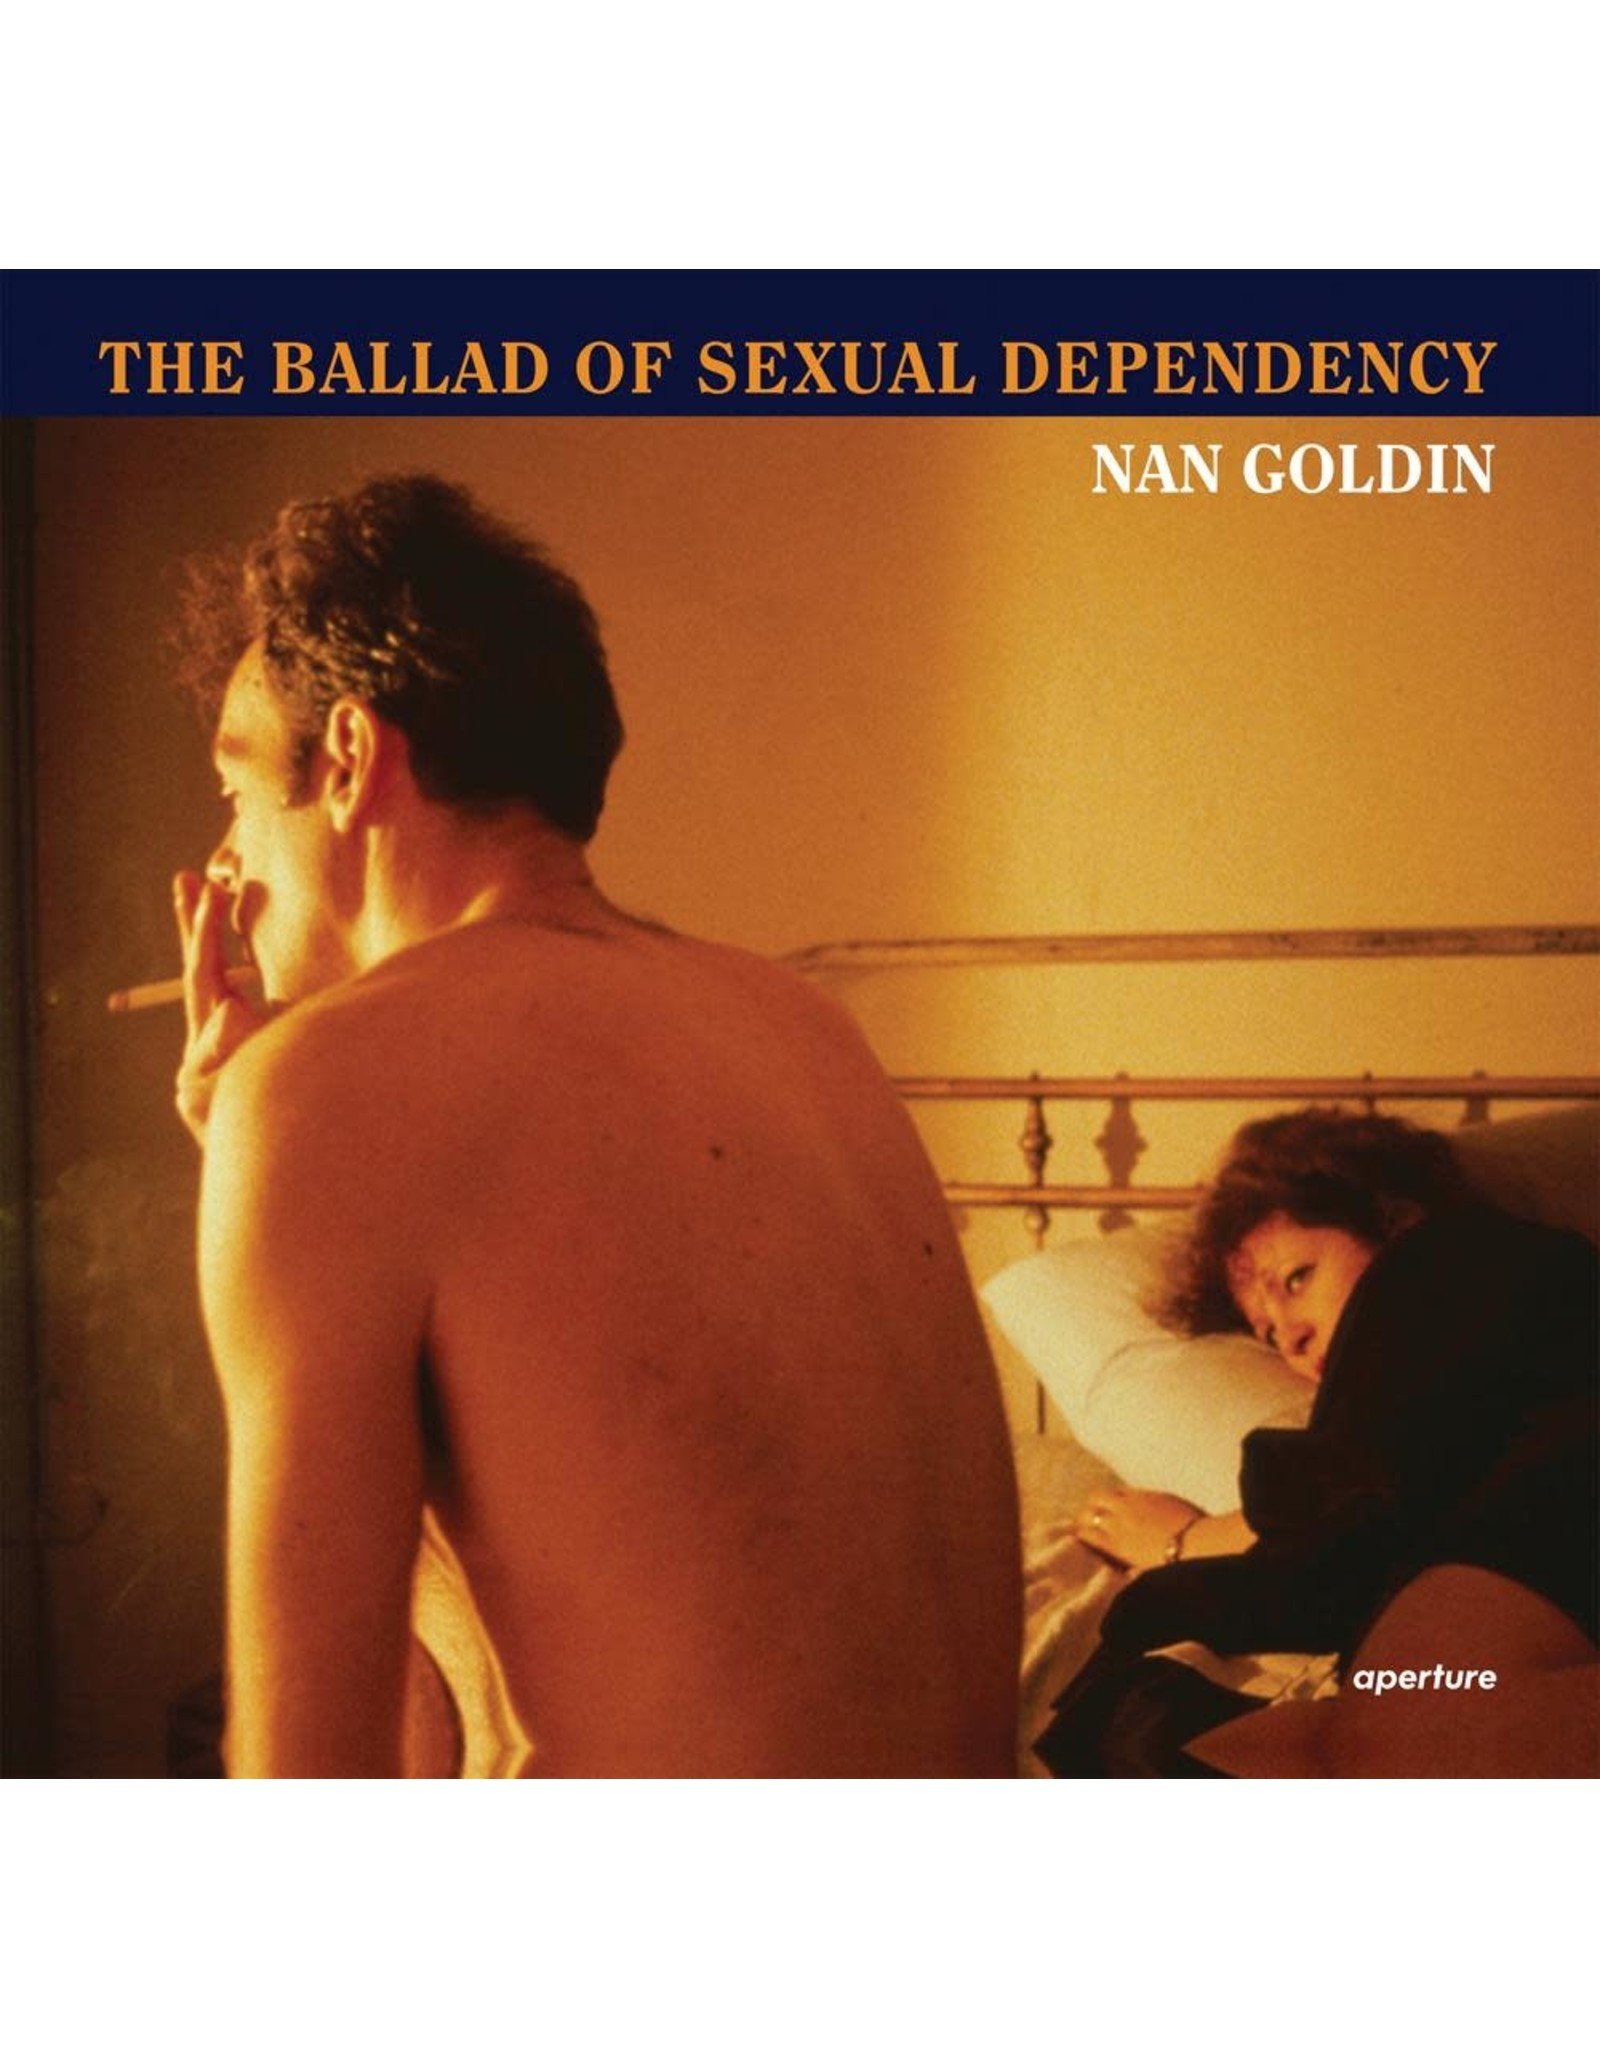 The Ballad Of Sexual Dependency : ballad, sexual, dependency, Goldin:, Ballad, Sexual, Dependency, International, Center, Photography